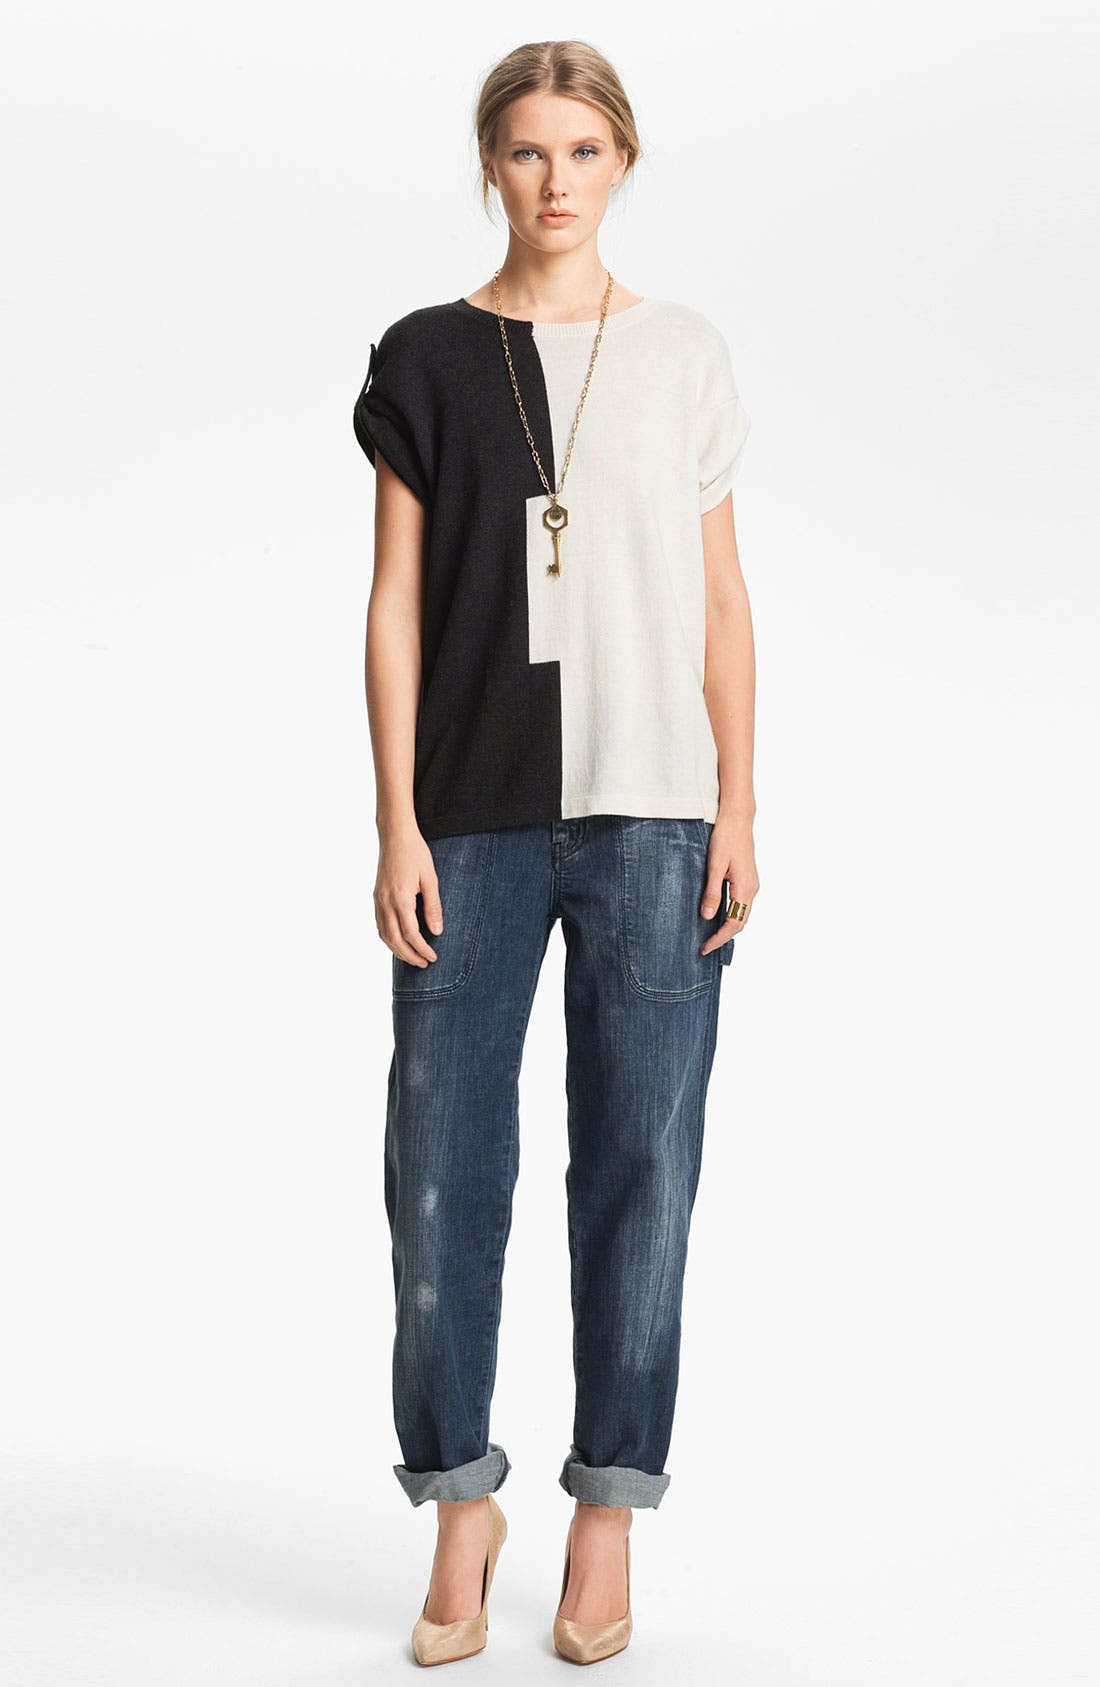 Main Image - Kelly Wearstler Abstract Sweater